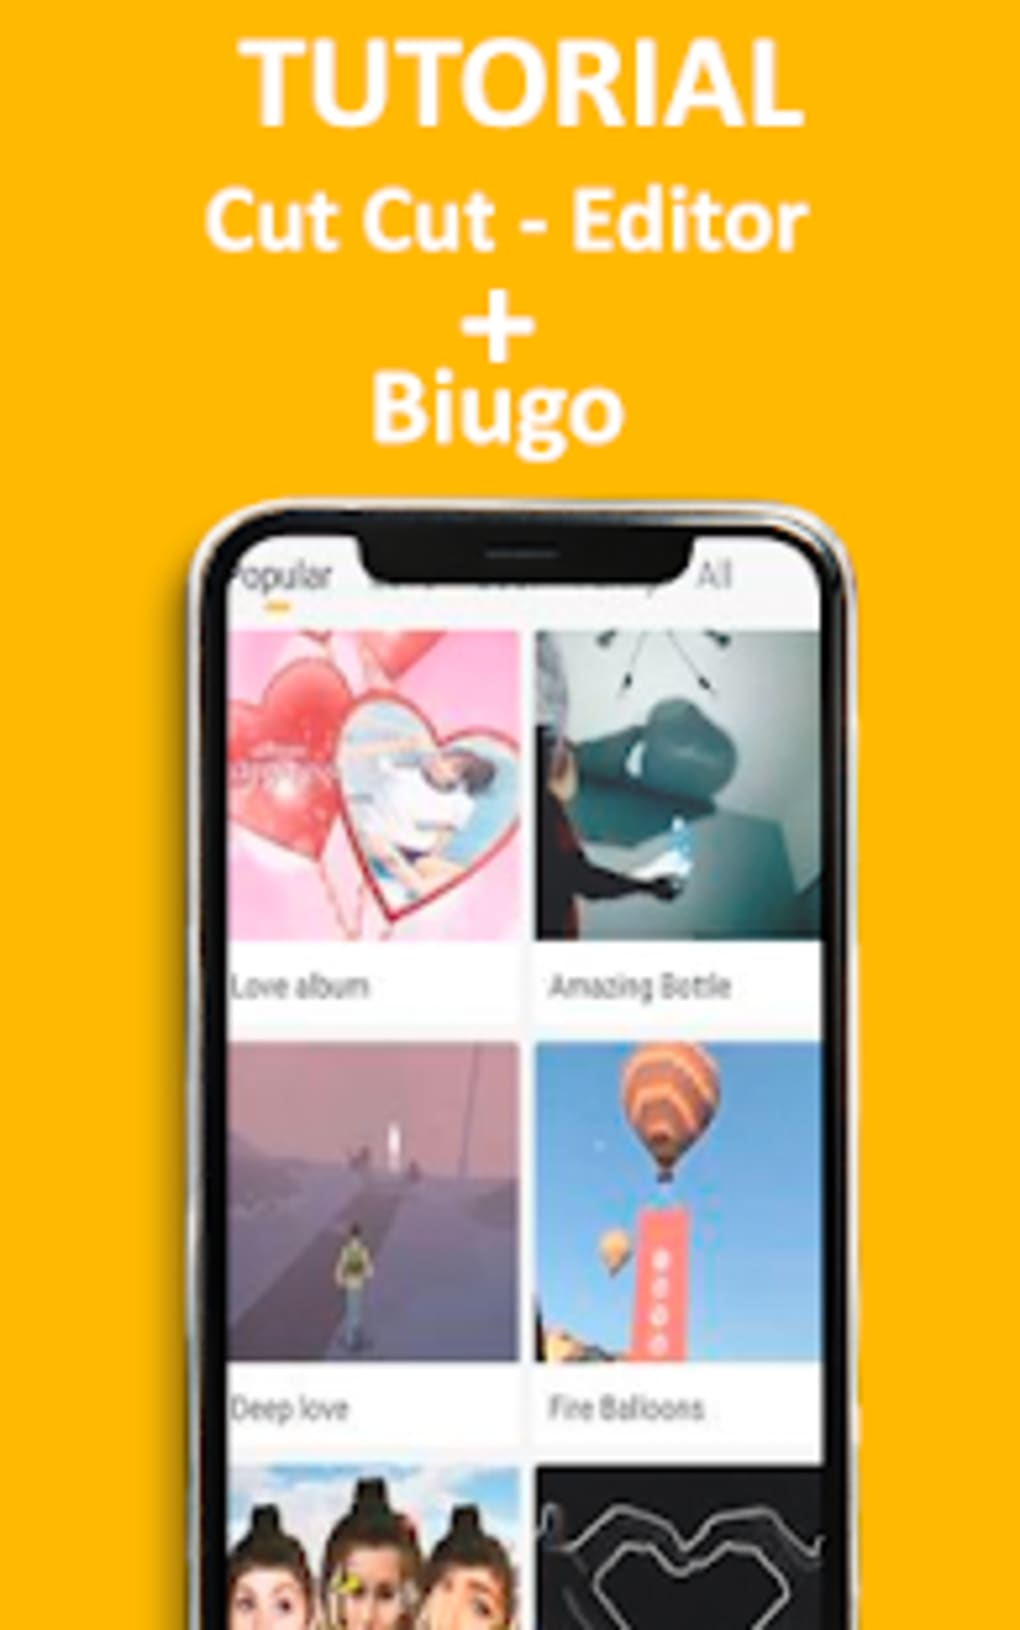 Guide Biugo Cut Cut Editor Video Magic for Android - Download